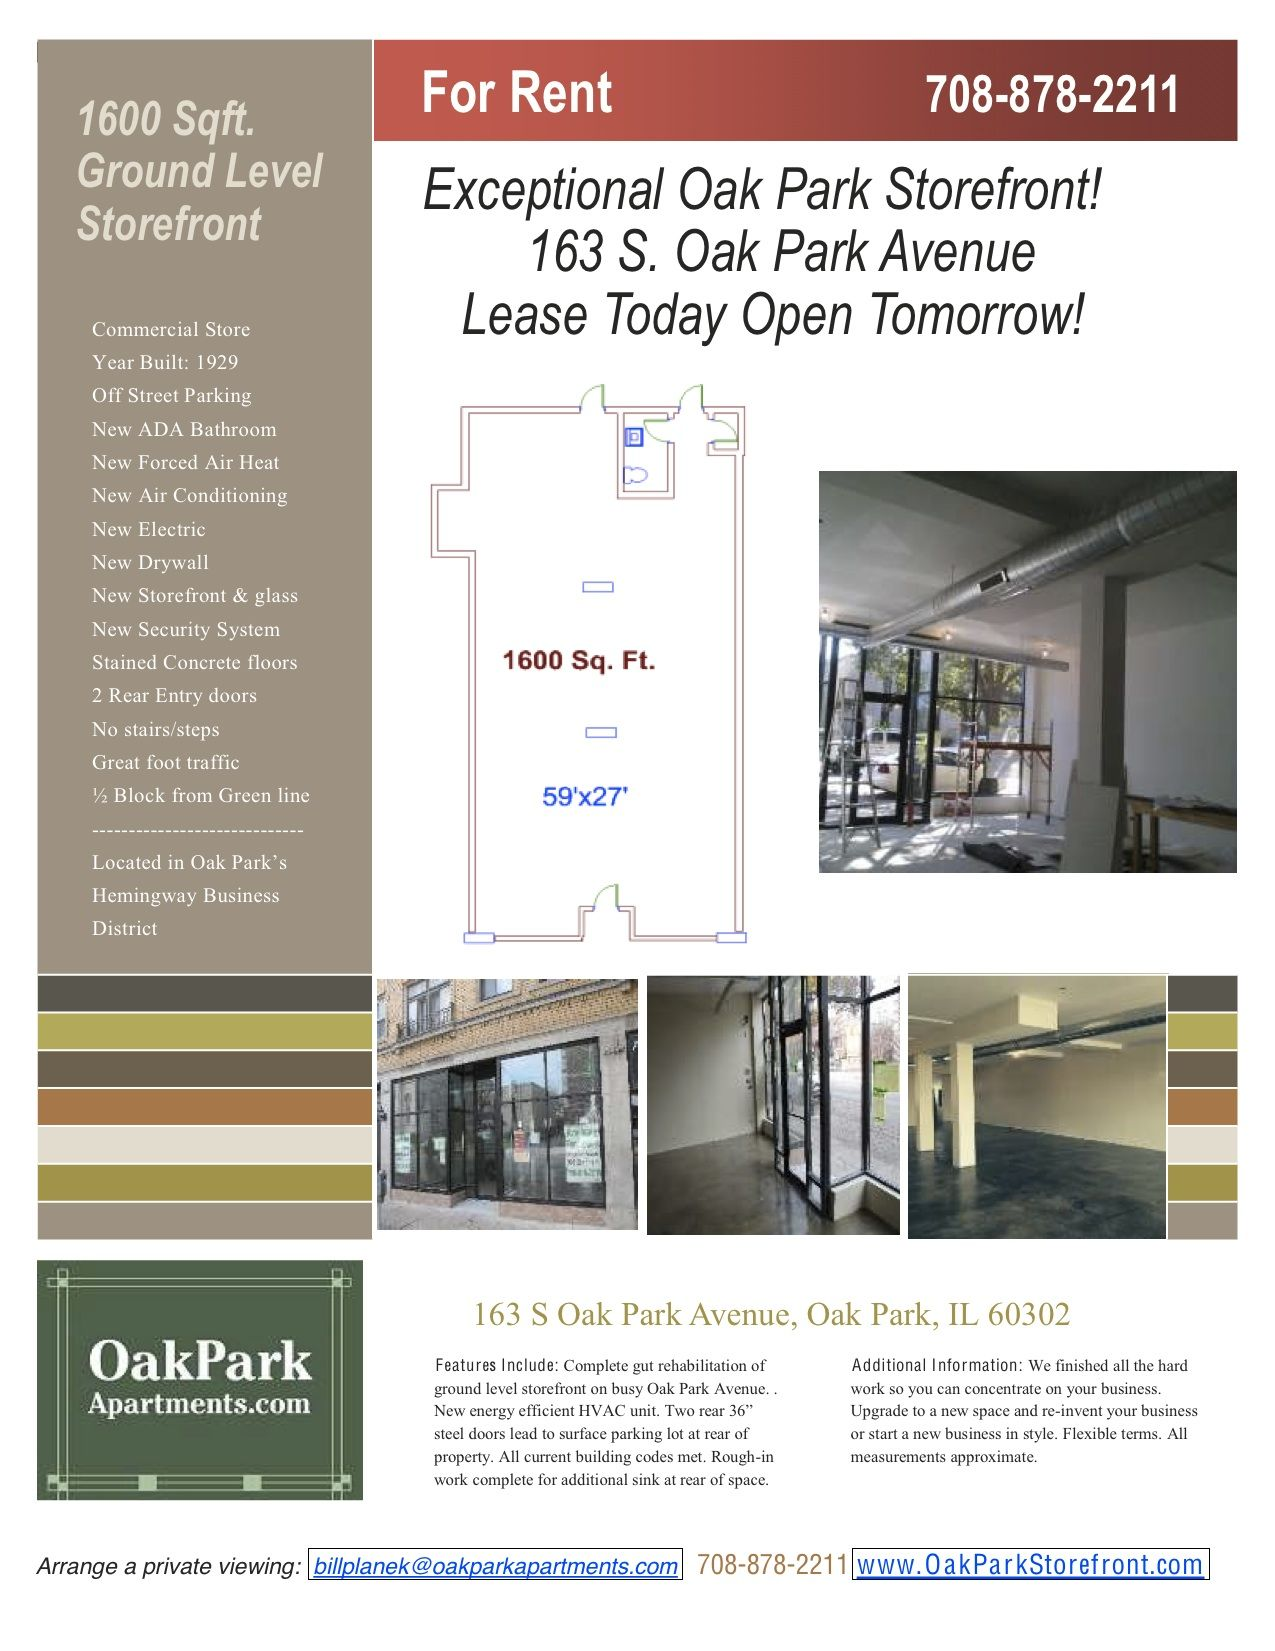 Calling All Businesses Check Out OpaS Newly Renovated Commercial